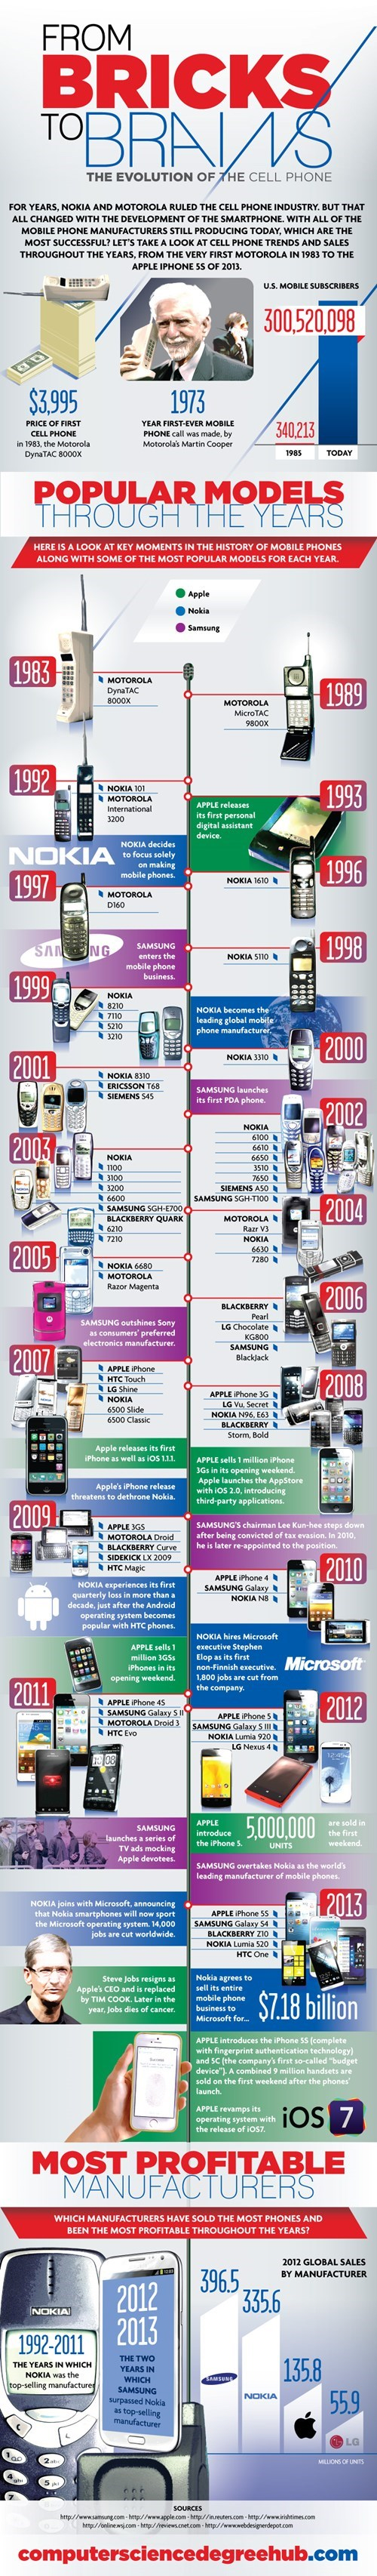 From Brick to Brains: The Evolution of the Cell Phone